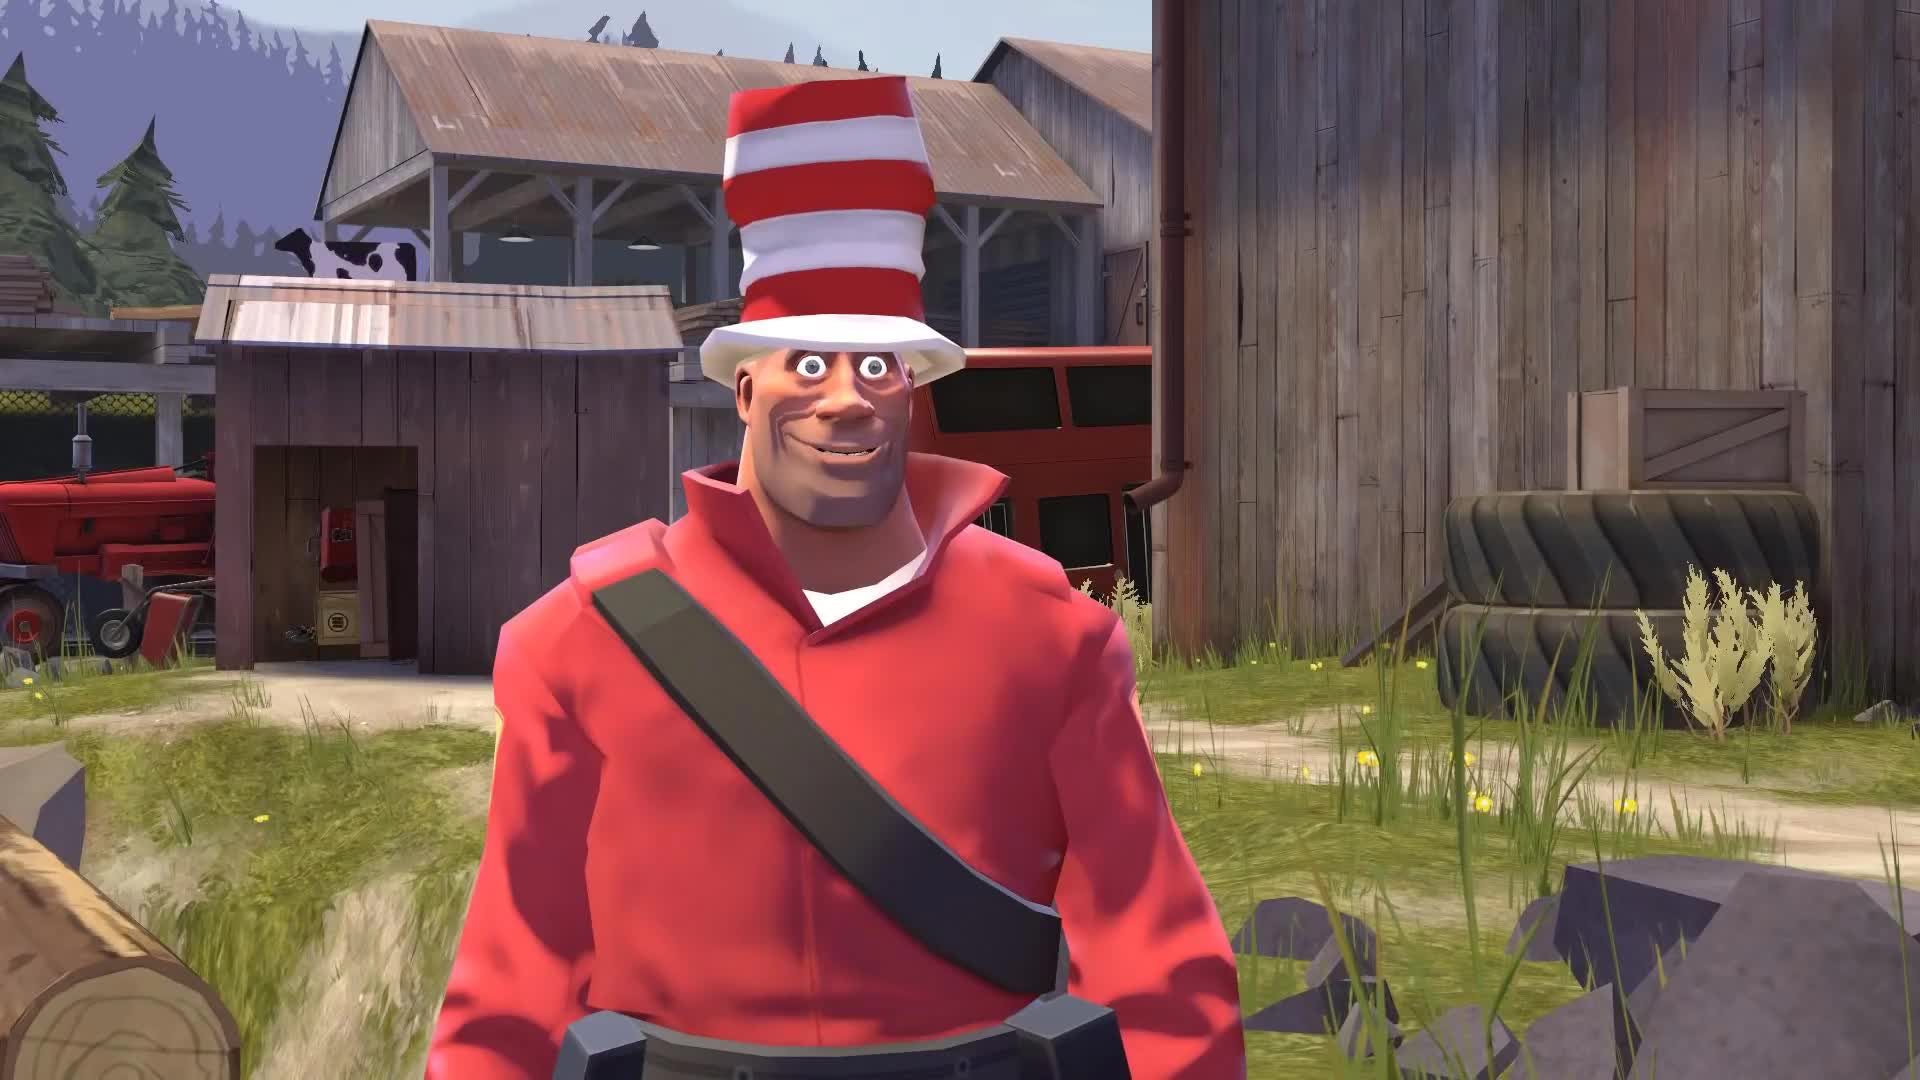 Comedy, Magical Events, animation, demoman, engineer, funny, gmod, heavy, medic, miss pauling, pyro, scout, sniper, soldier, spy, stblackst, team fortress 2, tf2, valve, Not so Magical Events: Soldier and Spy GIFs